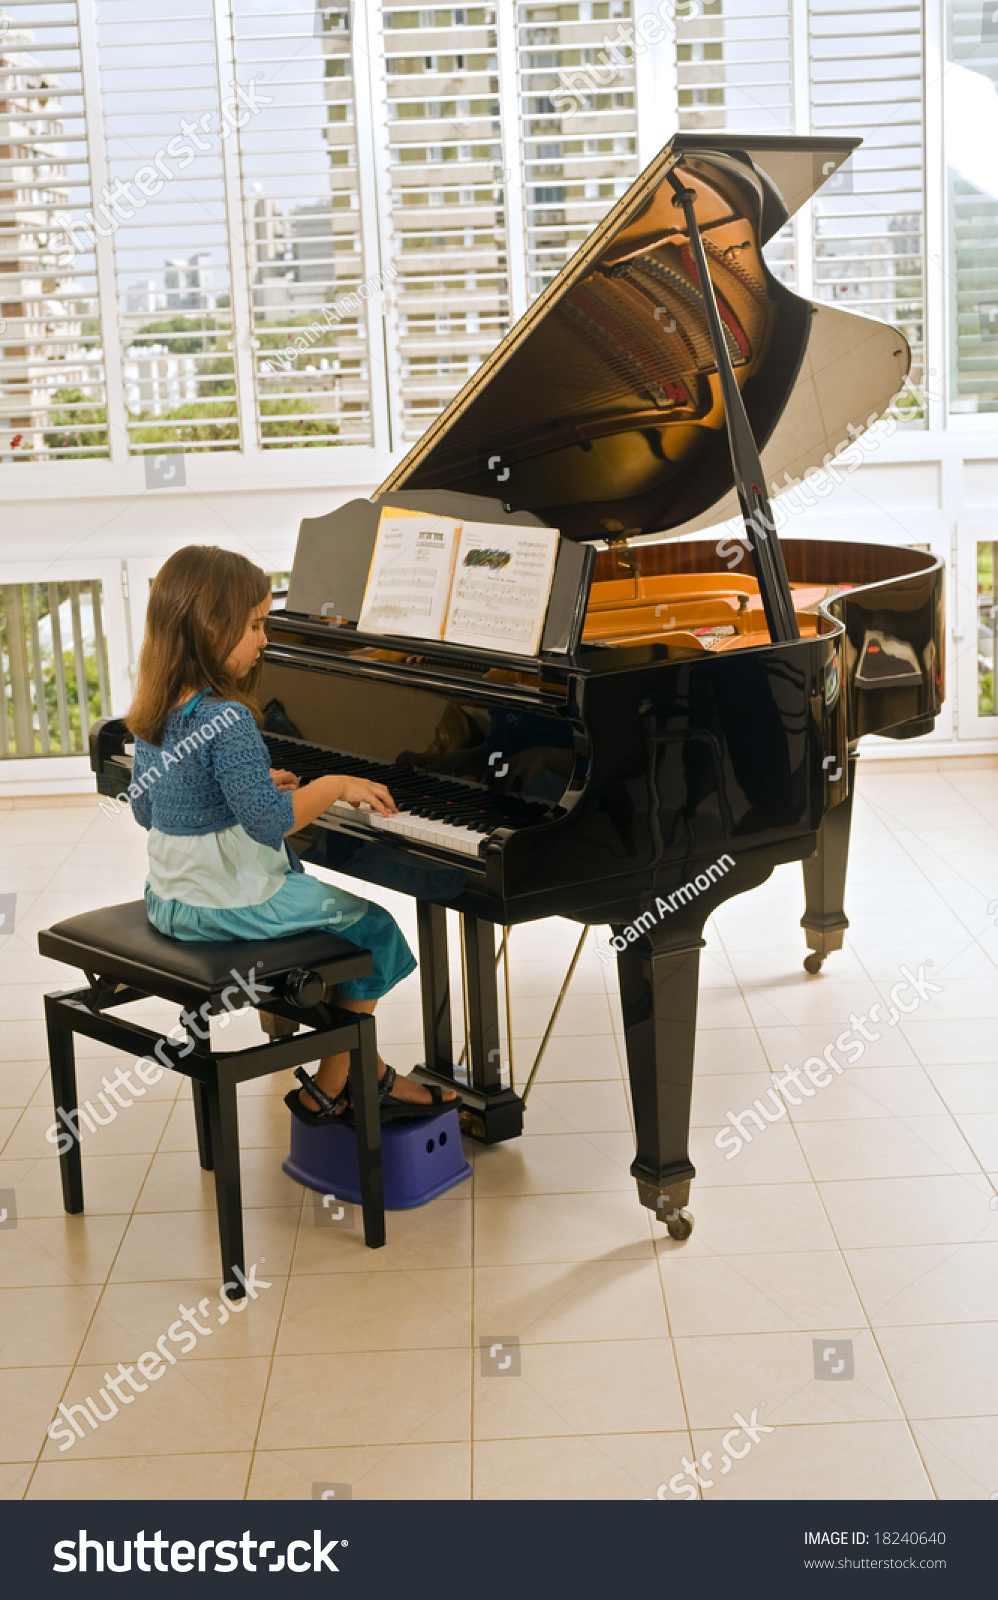 Opinion little girl nude playing piano site